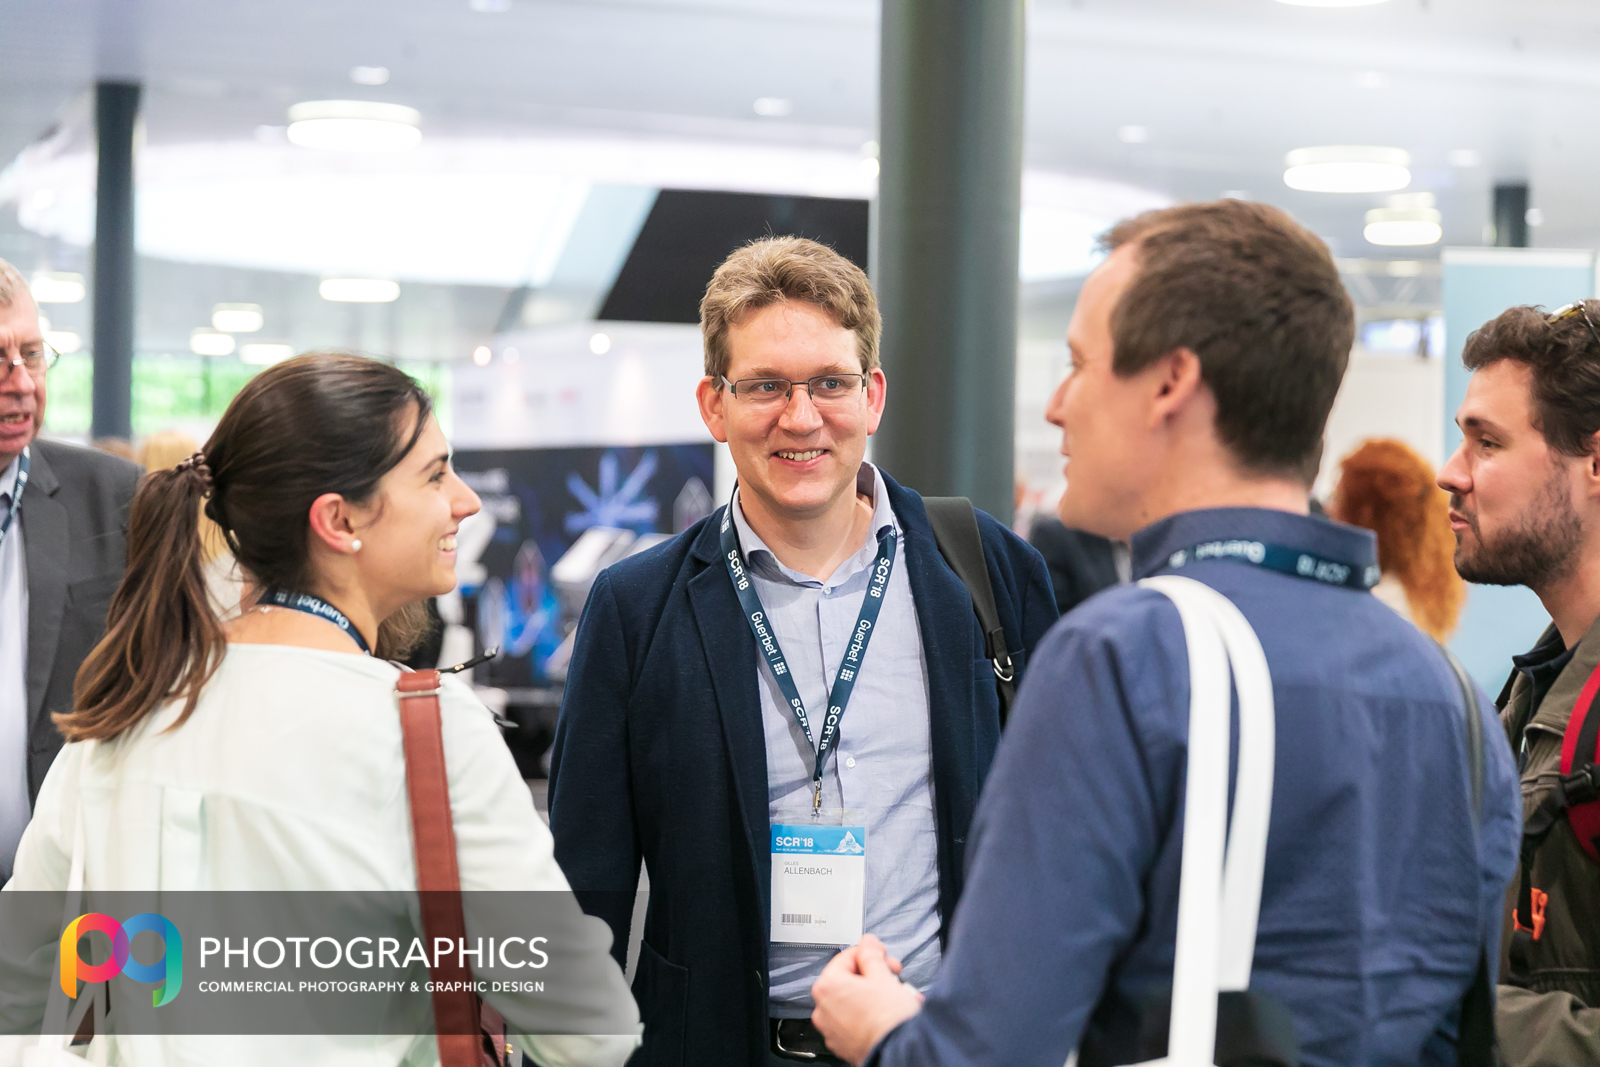 Conference-event-photography-glasgow-edinburgh-Lausanne-21.jpg